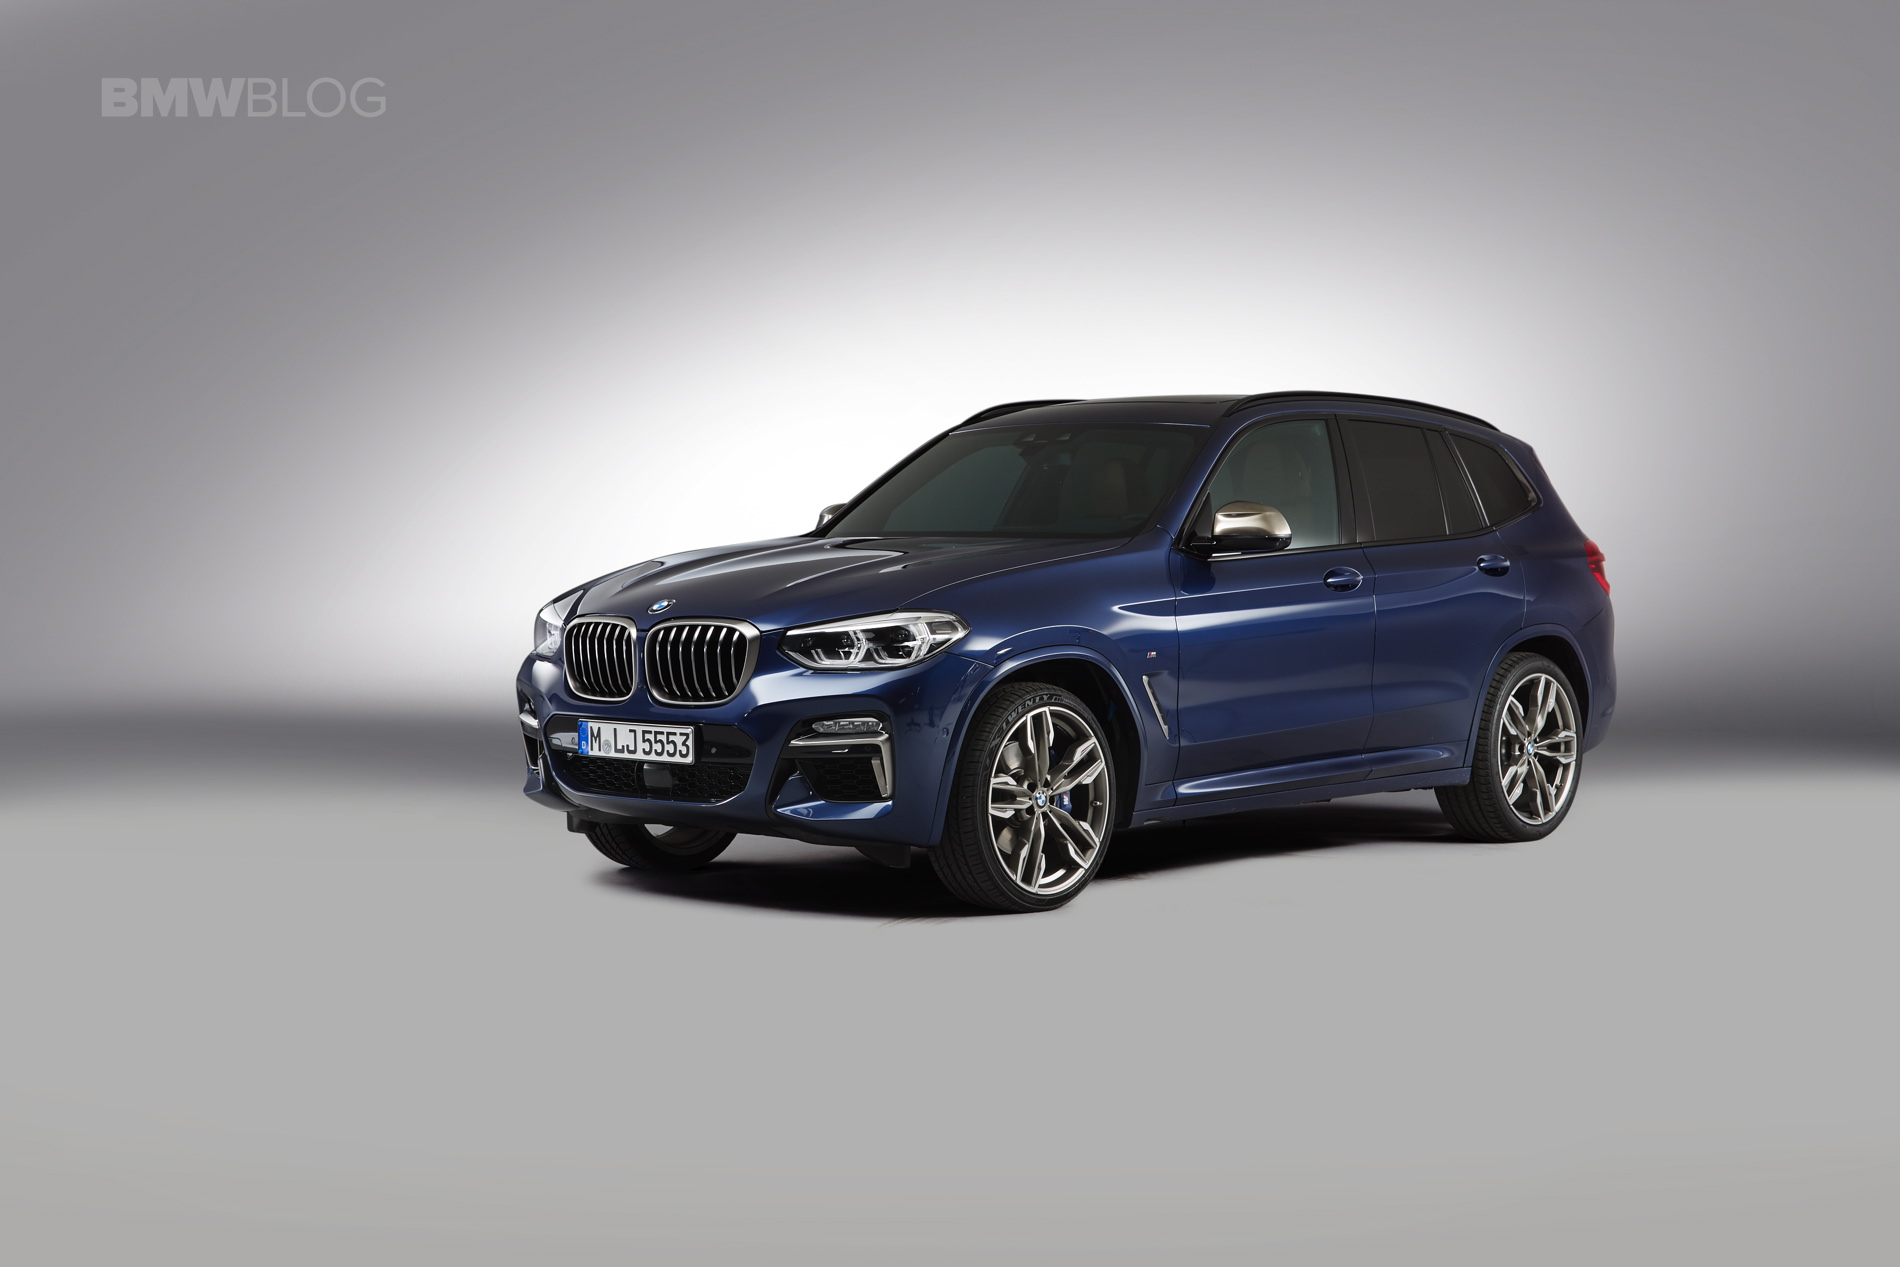 Bmw X3 2017 Interior >> We talk with Calvin Luk about the new BMW X3's design